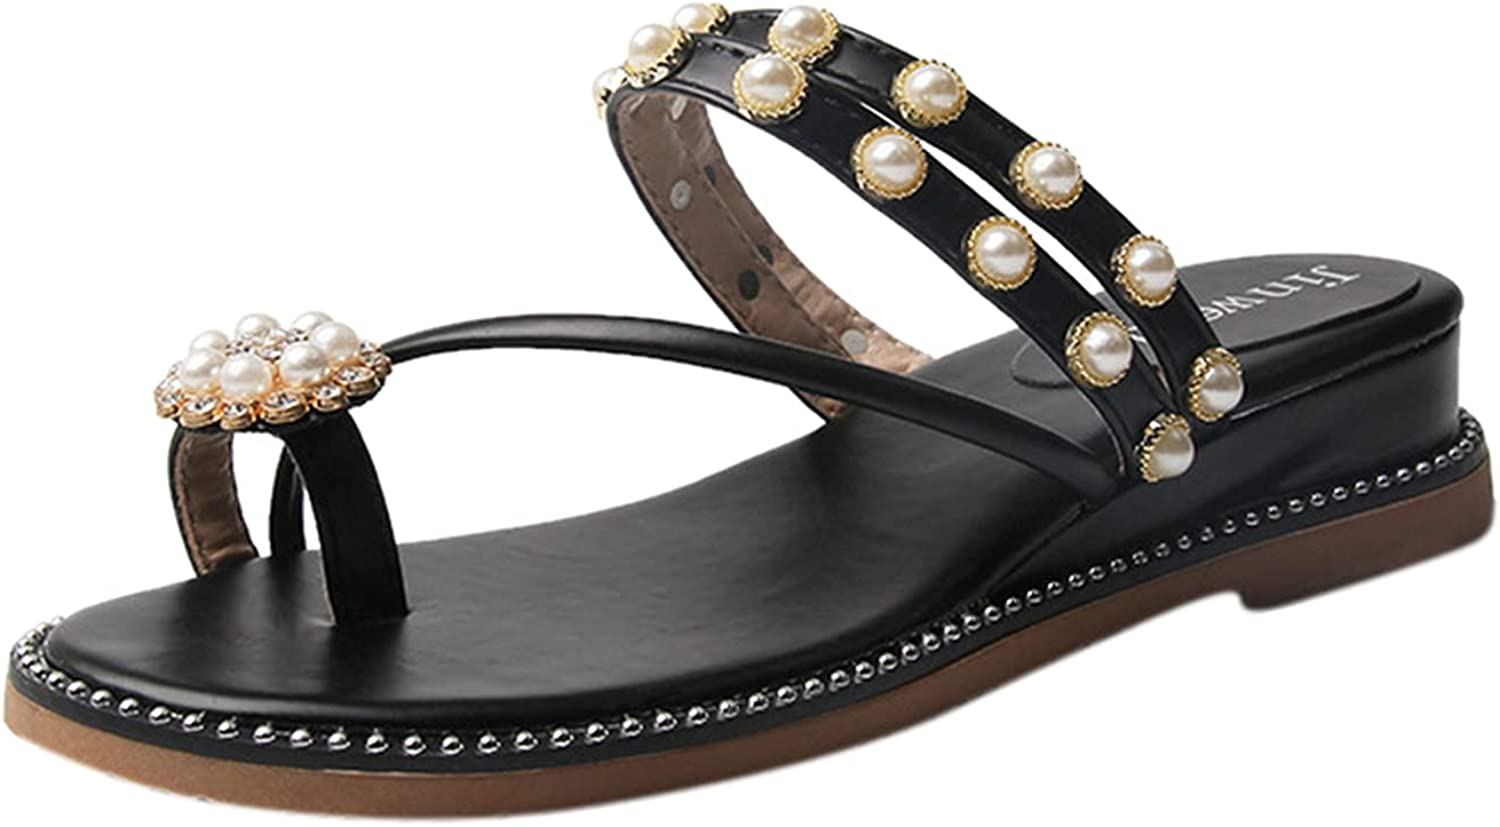 Gyouanime Minneapolis Mall Beach Indianapolis Mall Sandals with Ring-Toe Wedge Dre Pearl Rhinestone